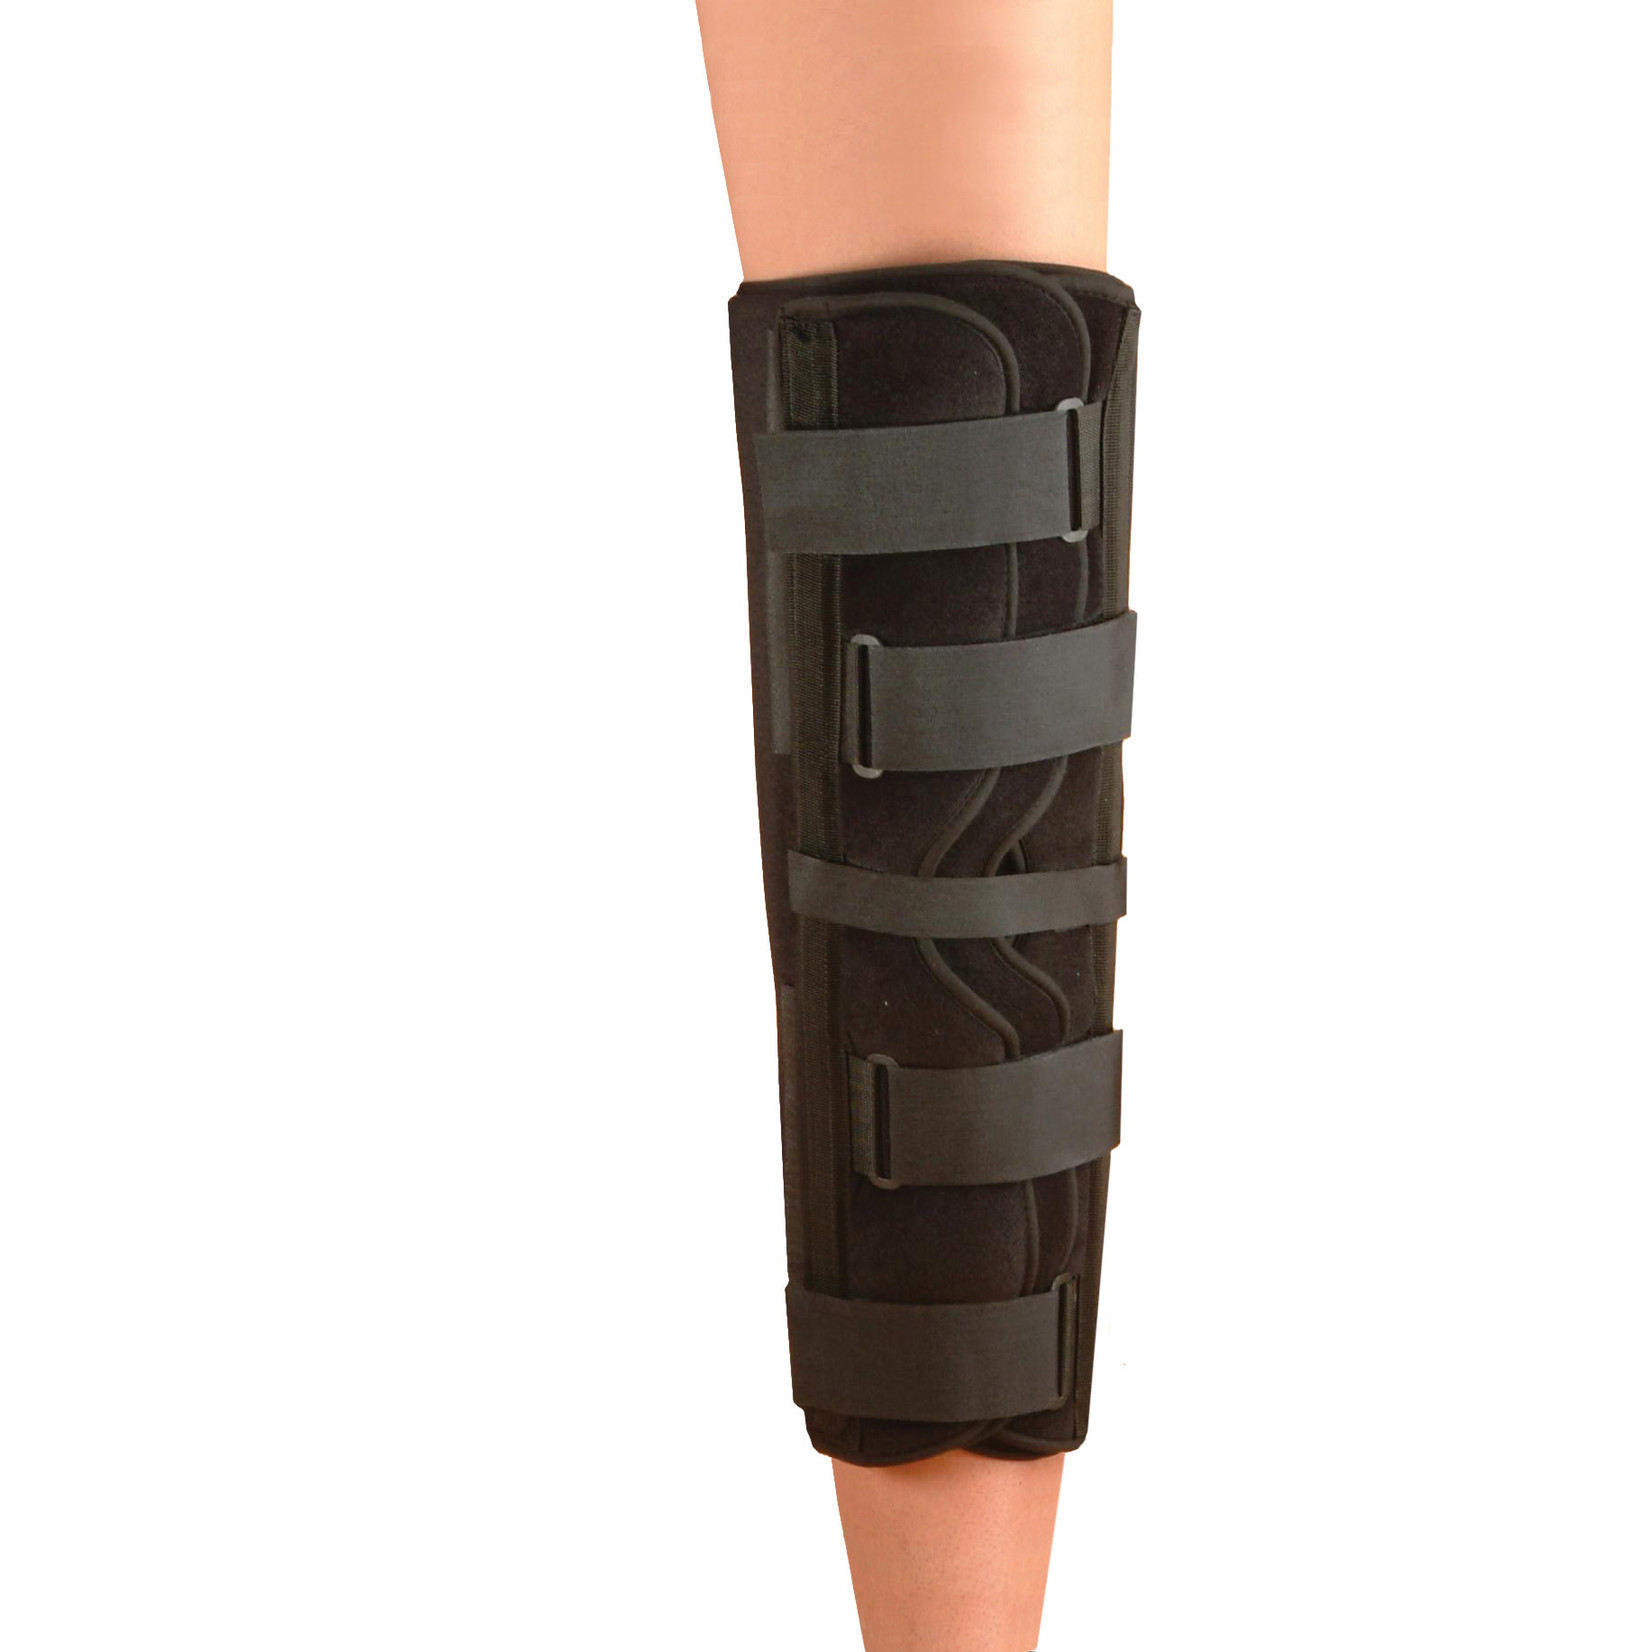 Hely & Weber THREE PANEL KNEE IMMOBILIZER